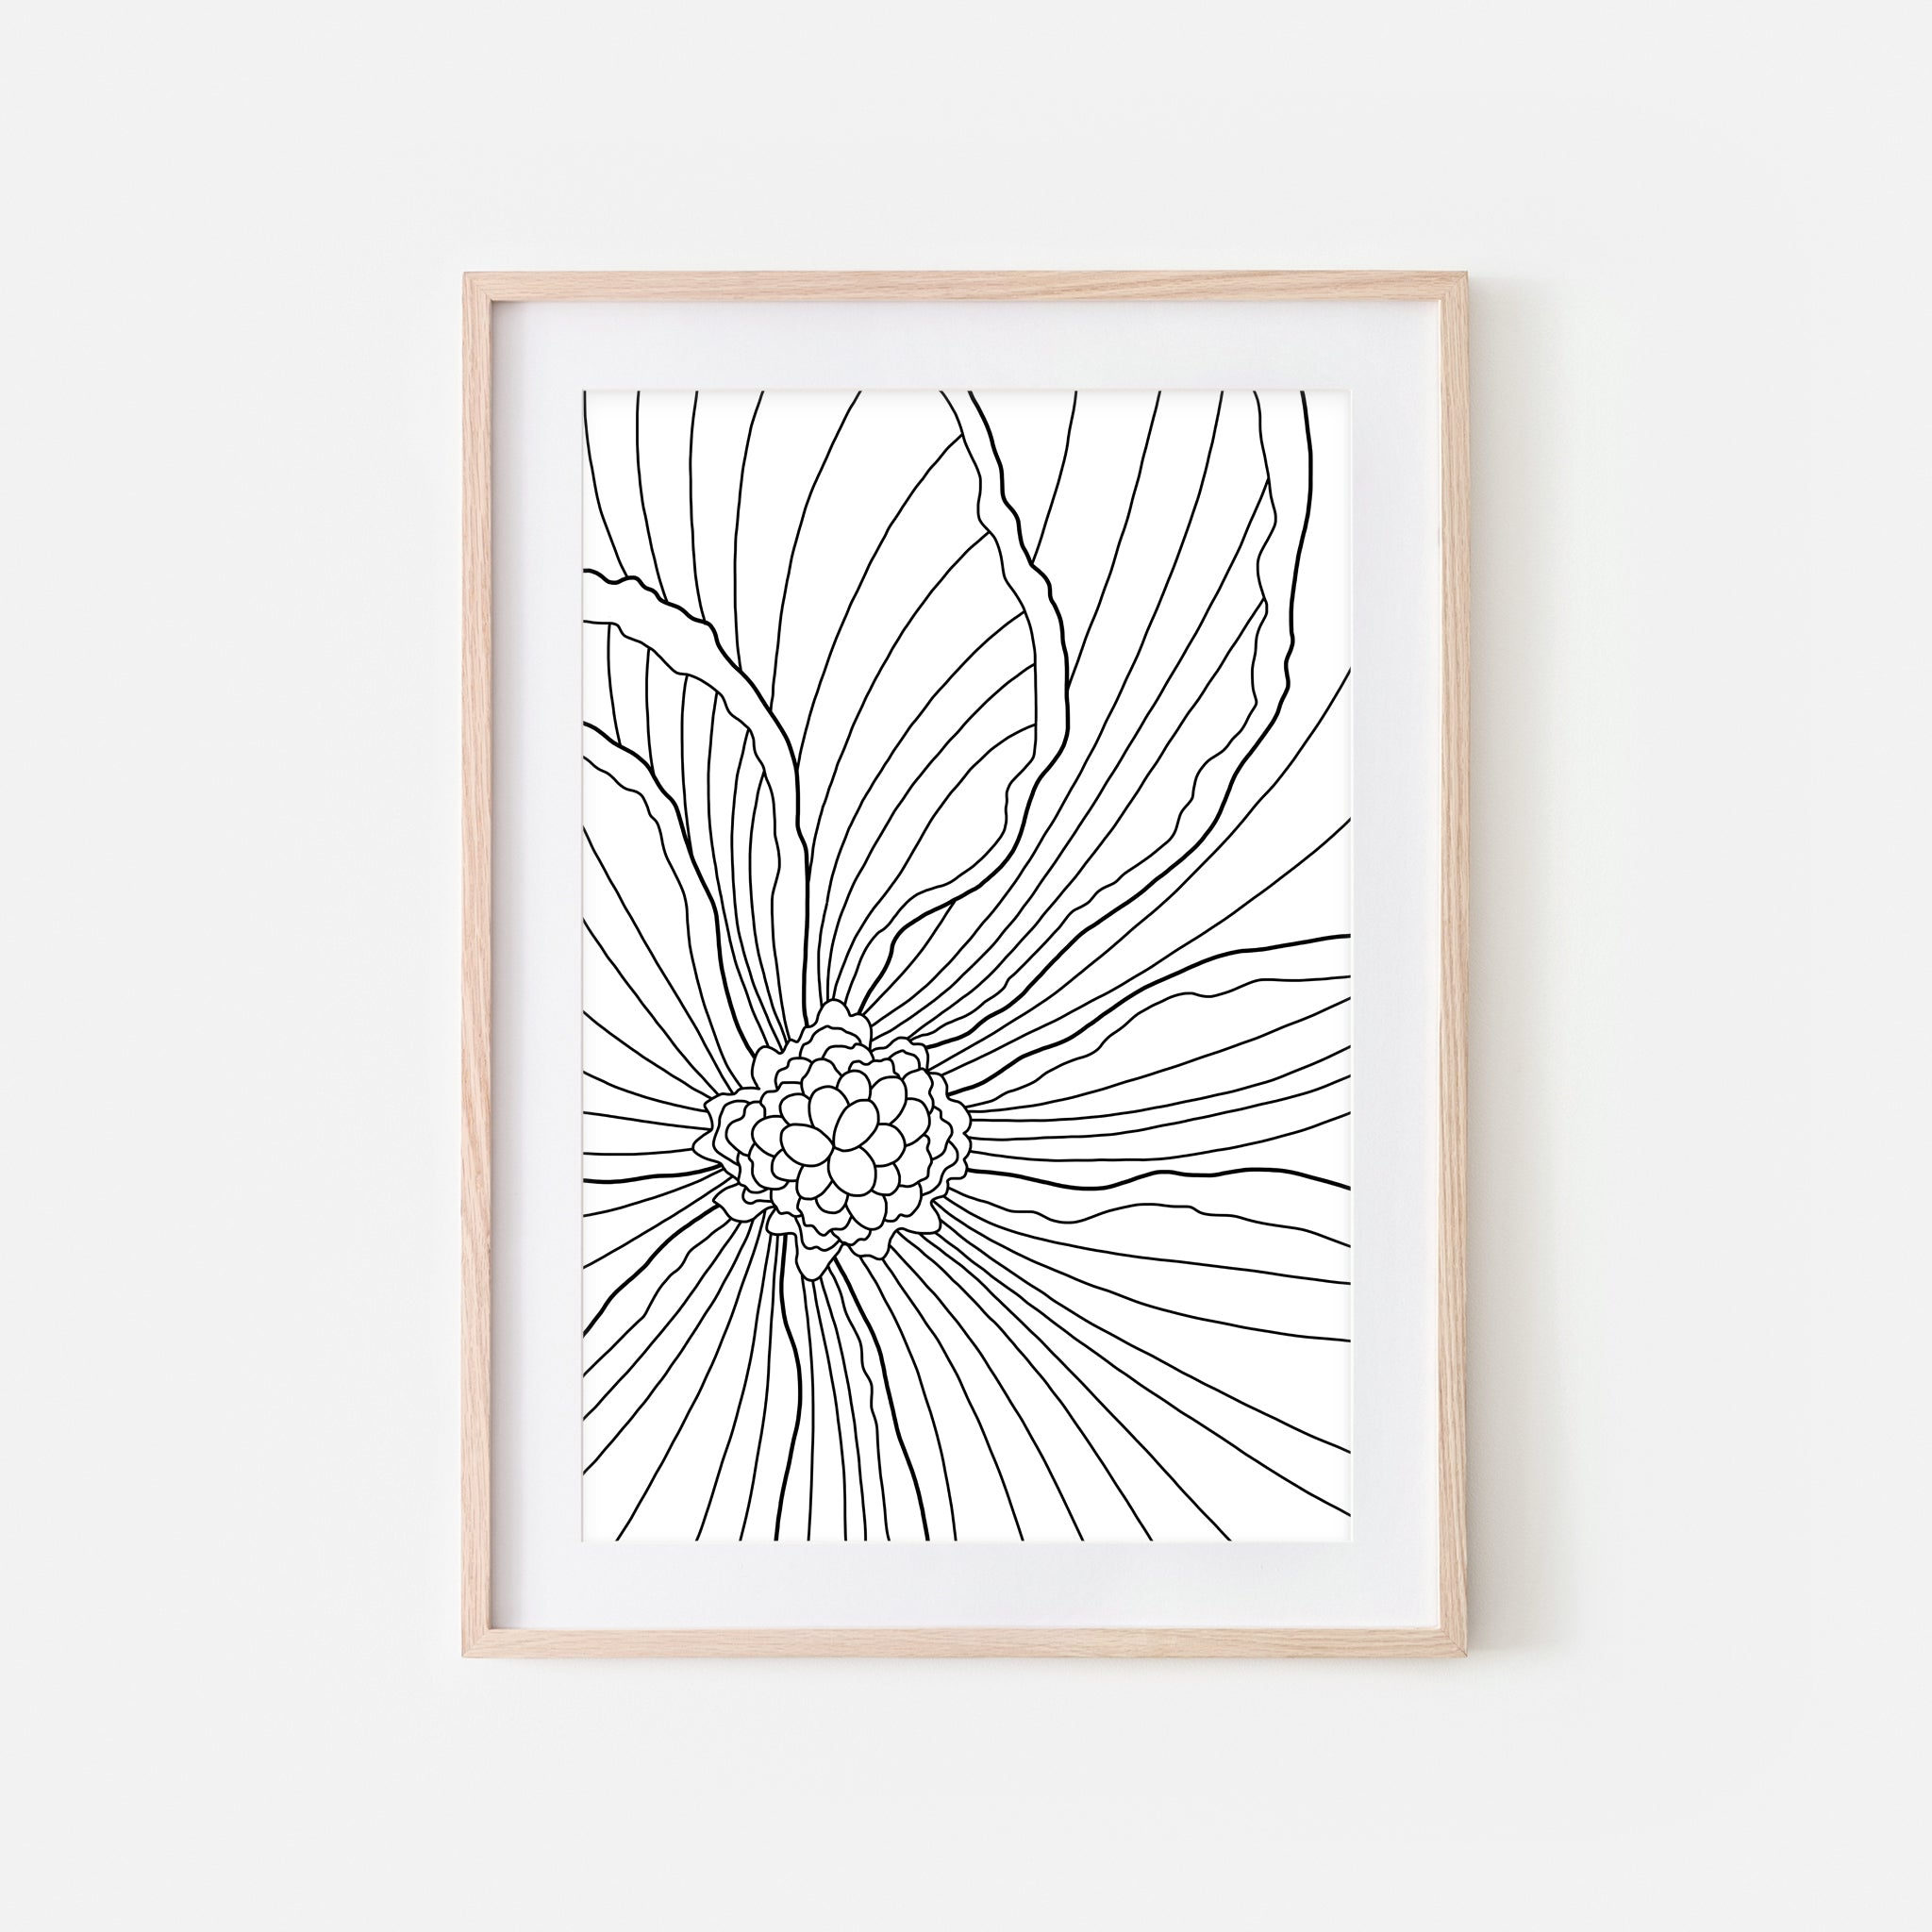 Floral No. 2 Wall Art - Minimalist Begonia Flower Line Drawing - Black and White Print, Poster or Printable Download